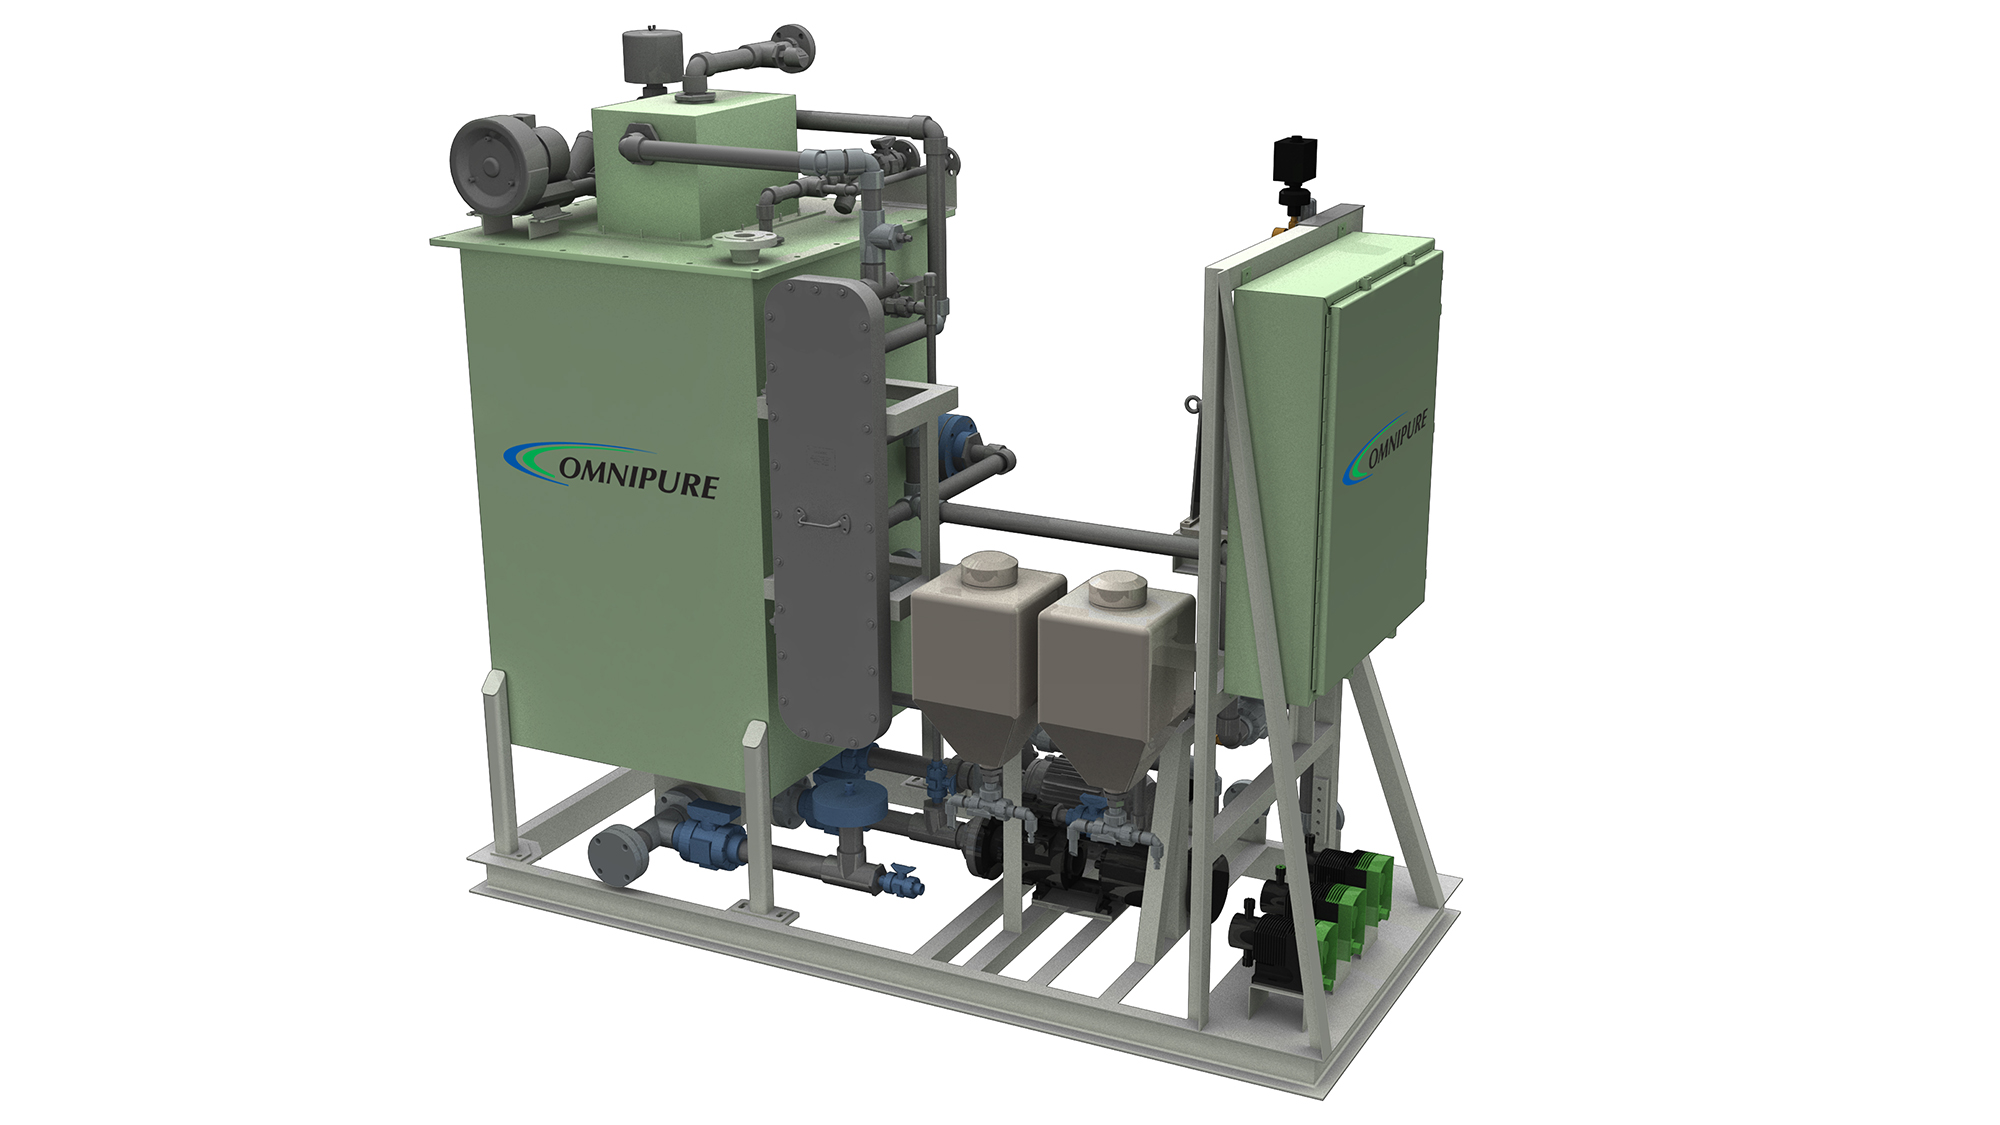 OMNIPURE™ Series 64 G2 Marine Sewage Treatment System